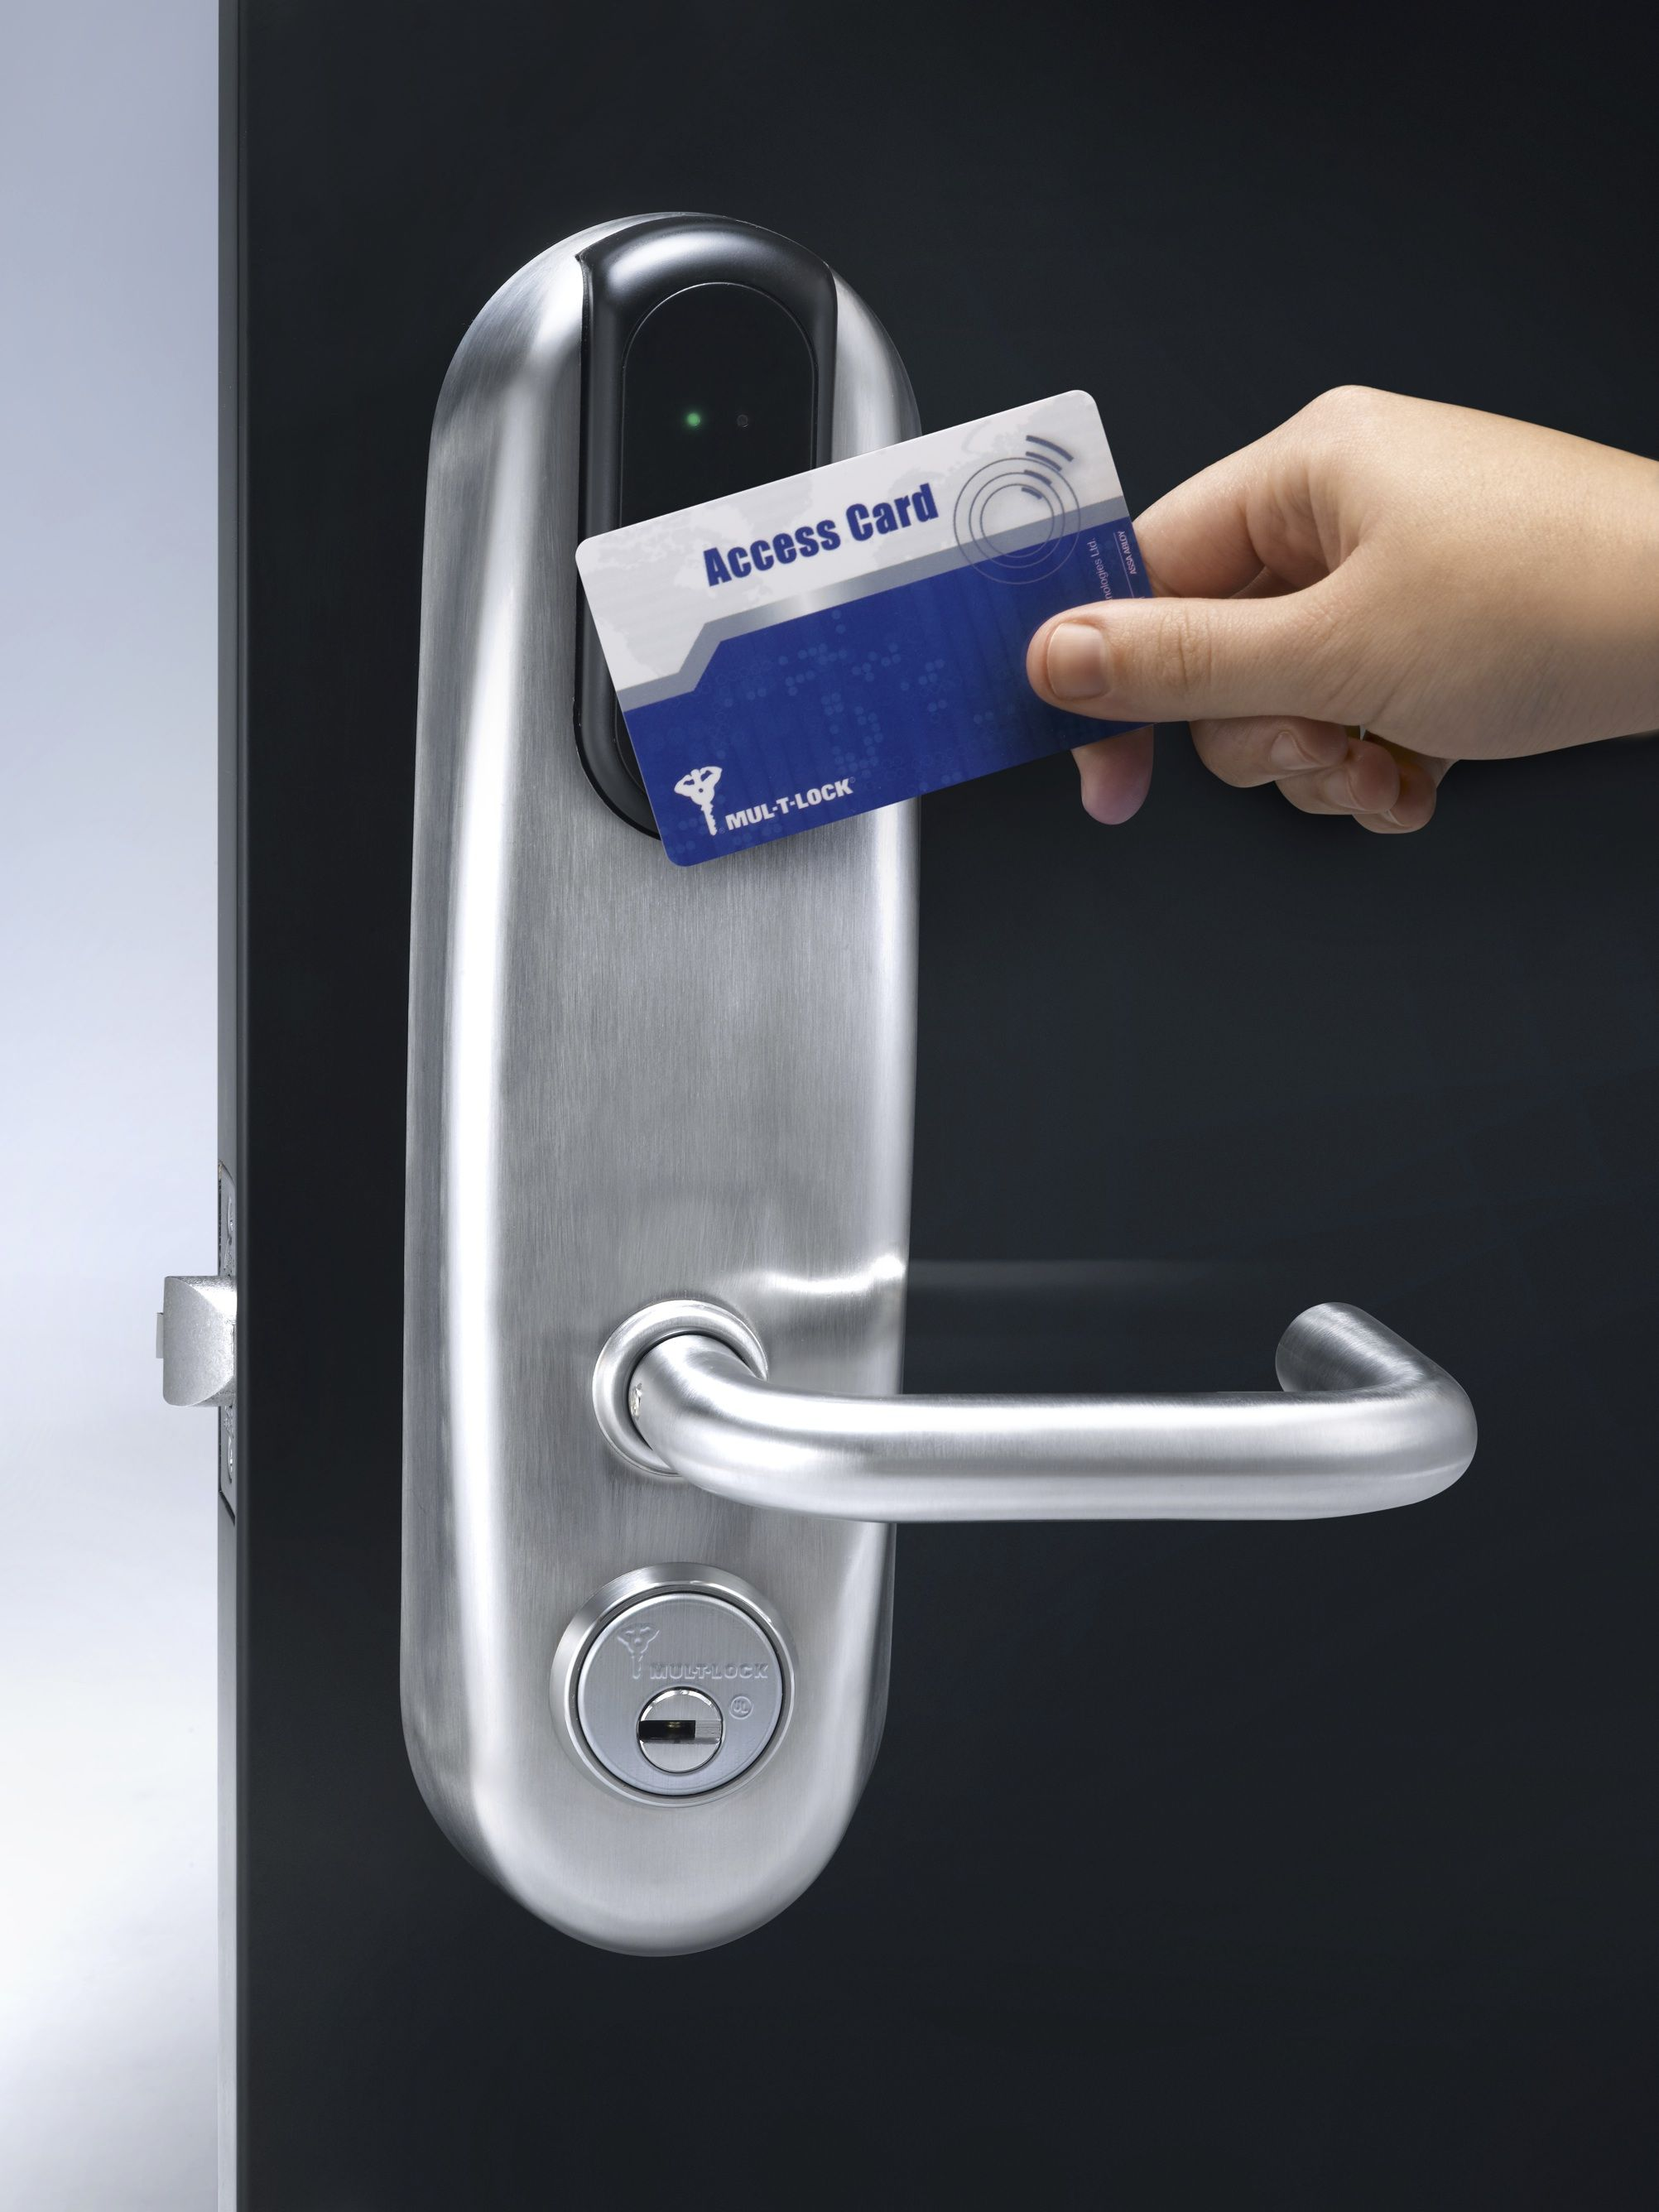 Multlock Doors Access Card Multlock Doors Pinterest Doors